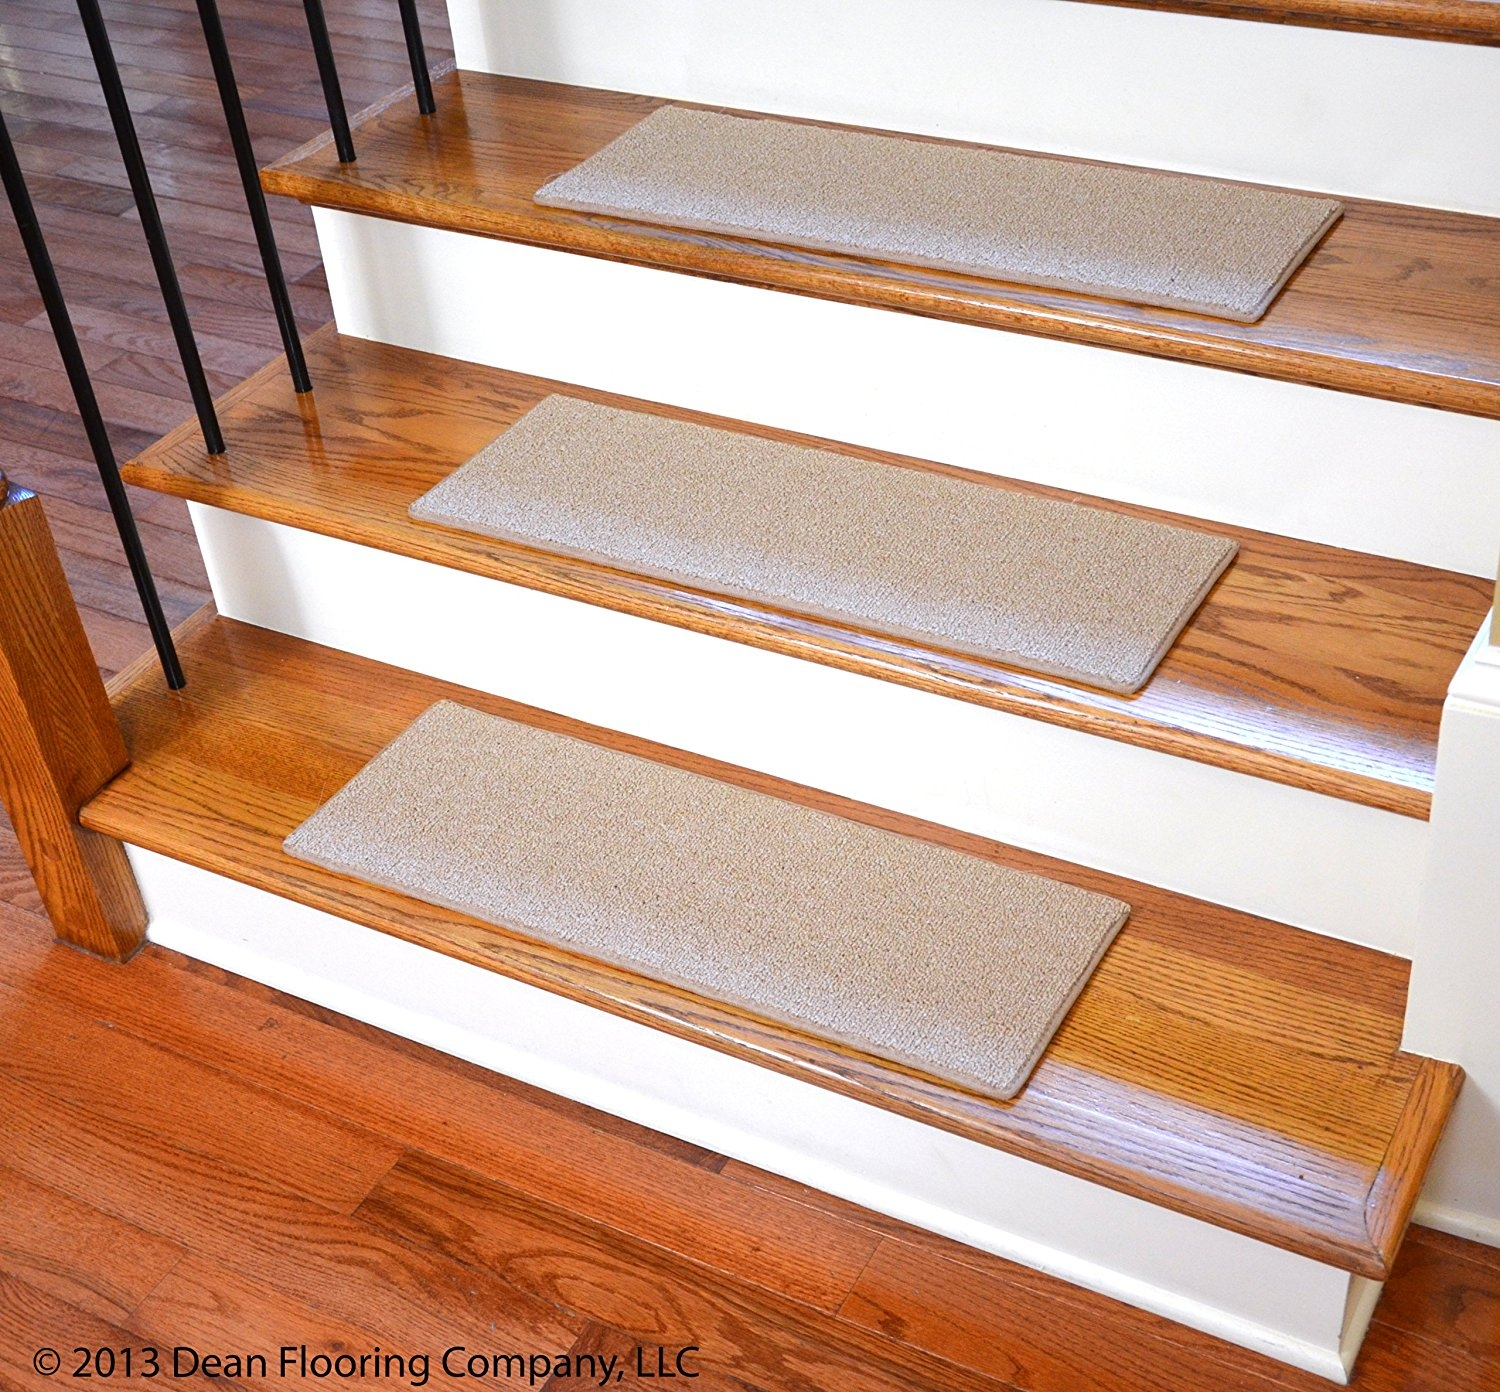 Dean Non Slip Tape Free Pet Friendly Diy Carpet Stair Treadsrugs Within Stair Tread Carpet Rugs (Image 3 of 15)